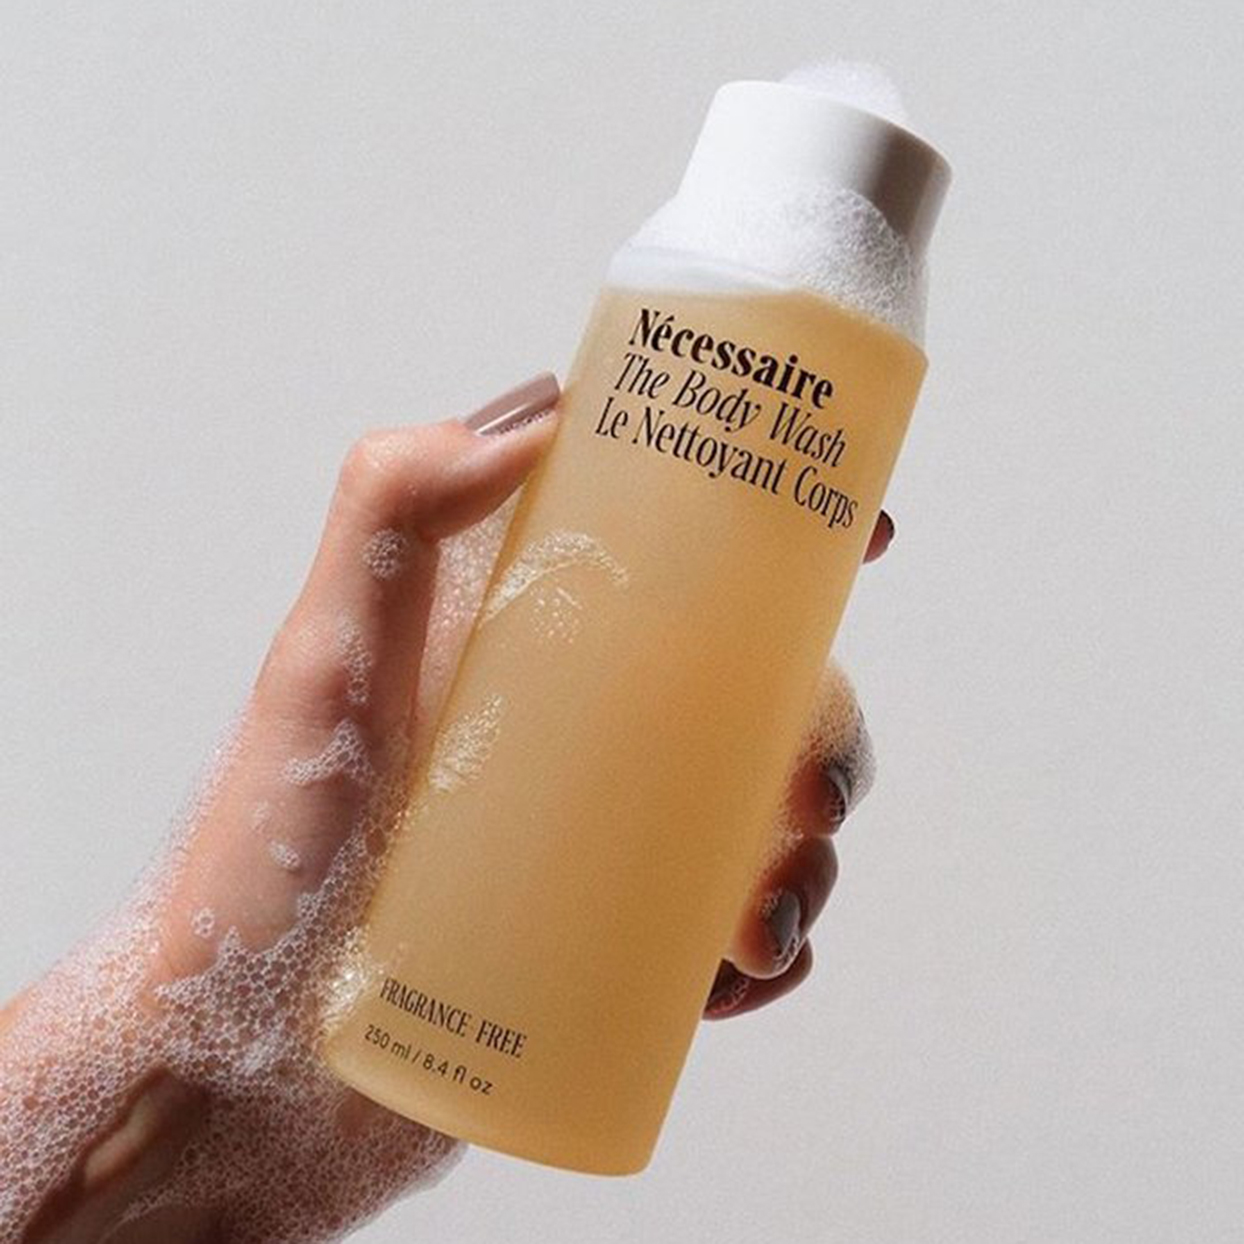 This Cult Body Wash Brand Sold 10,000 Bottles In Under a Year